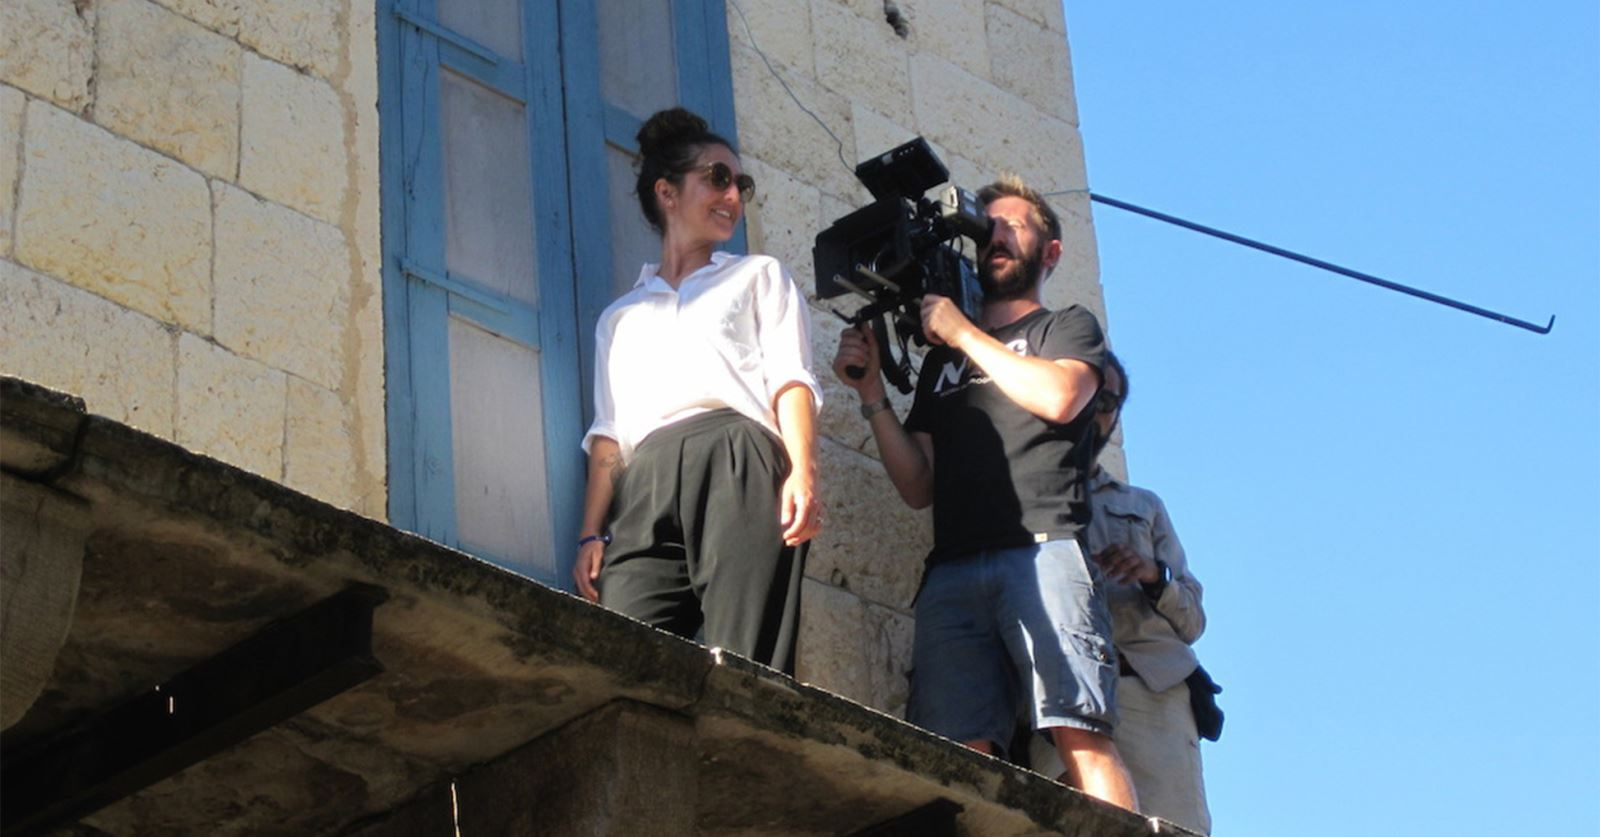 New GTC member: Alex Took fliming on the rooftops of Beirut for a Turner commercial 'Live, Love, Lebanon'